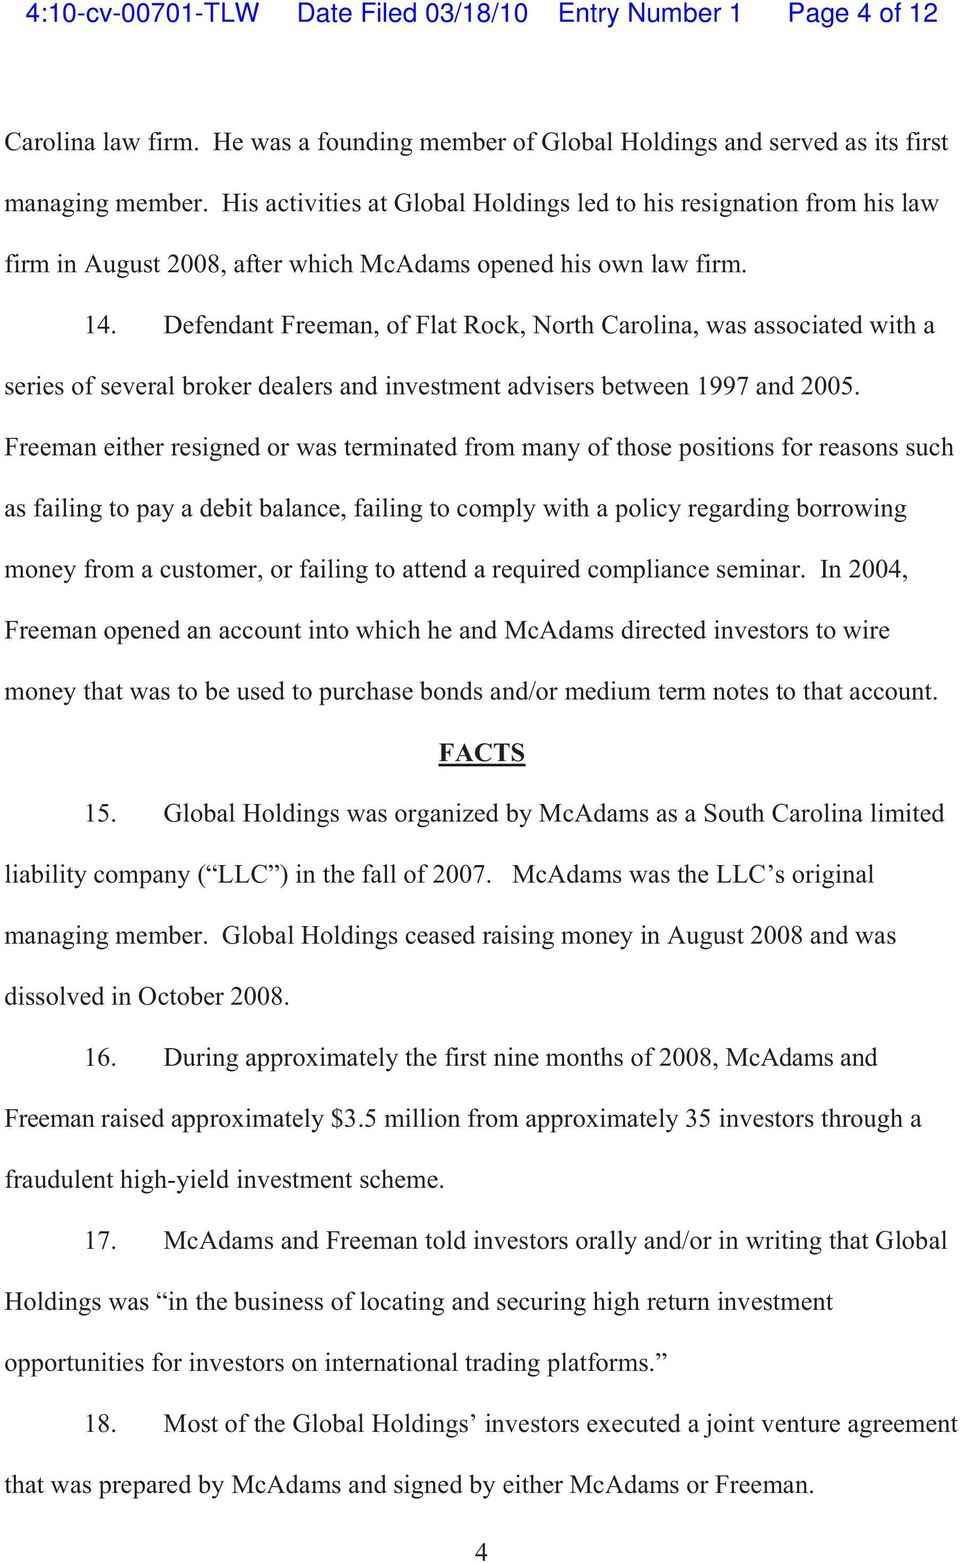 Defendant Freeman, of Flat Rock, North Carolina, was associated with a series of several broker dealers and investment advisers between 1997 and 2005.